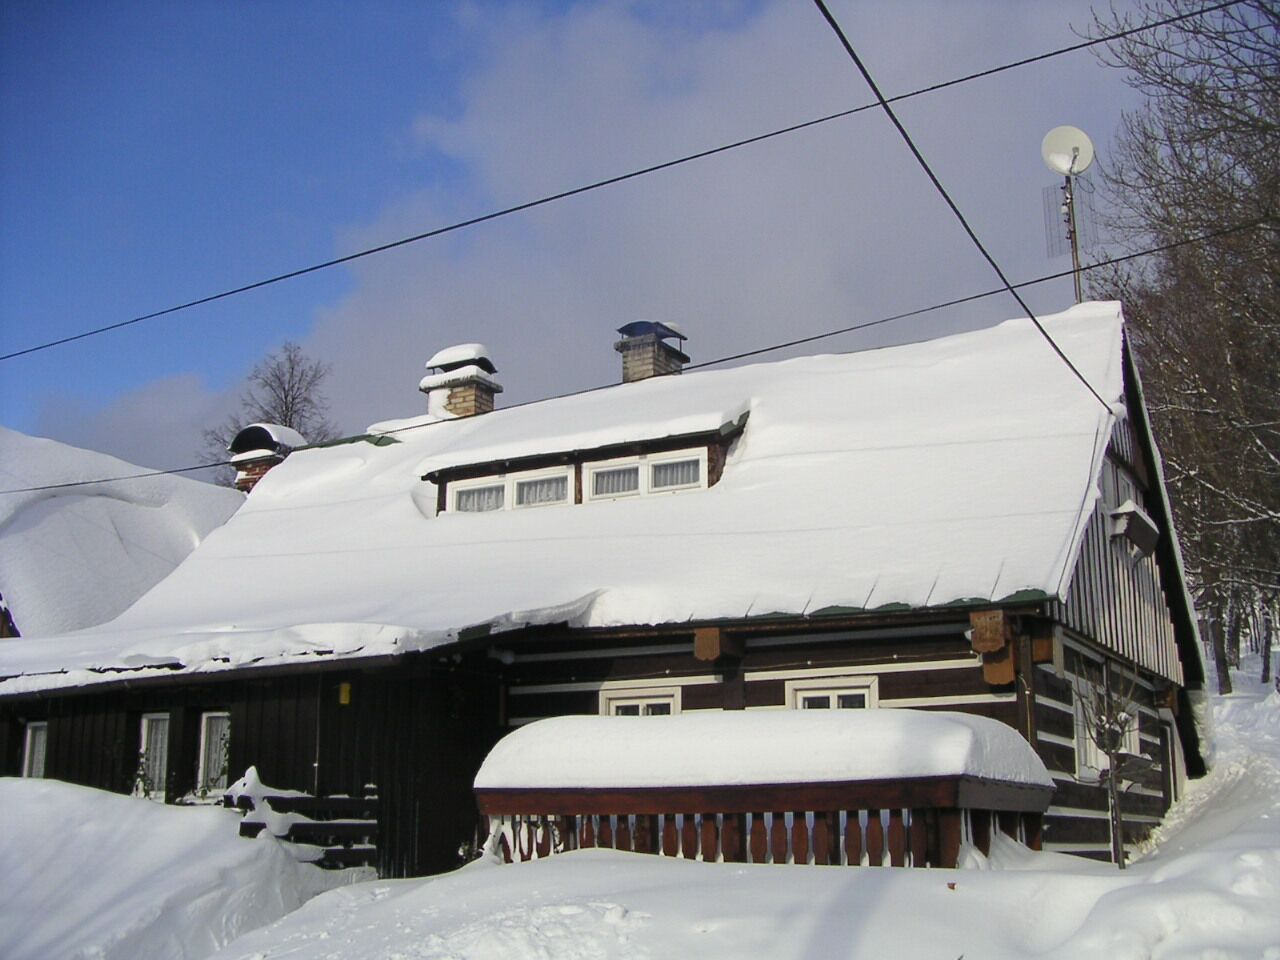 Ferienhaus in Winter